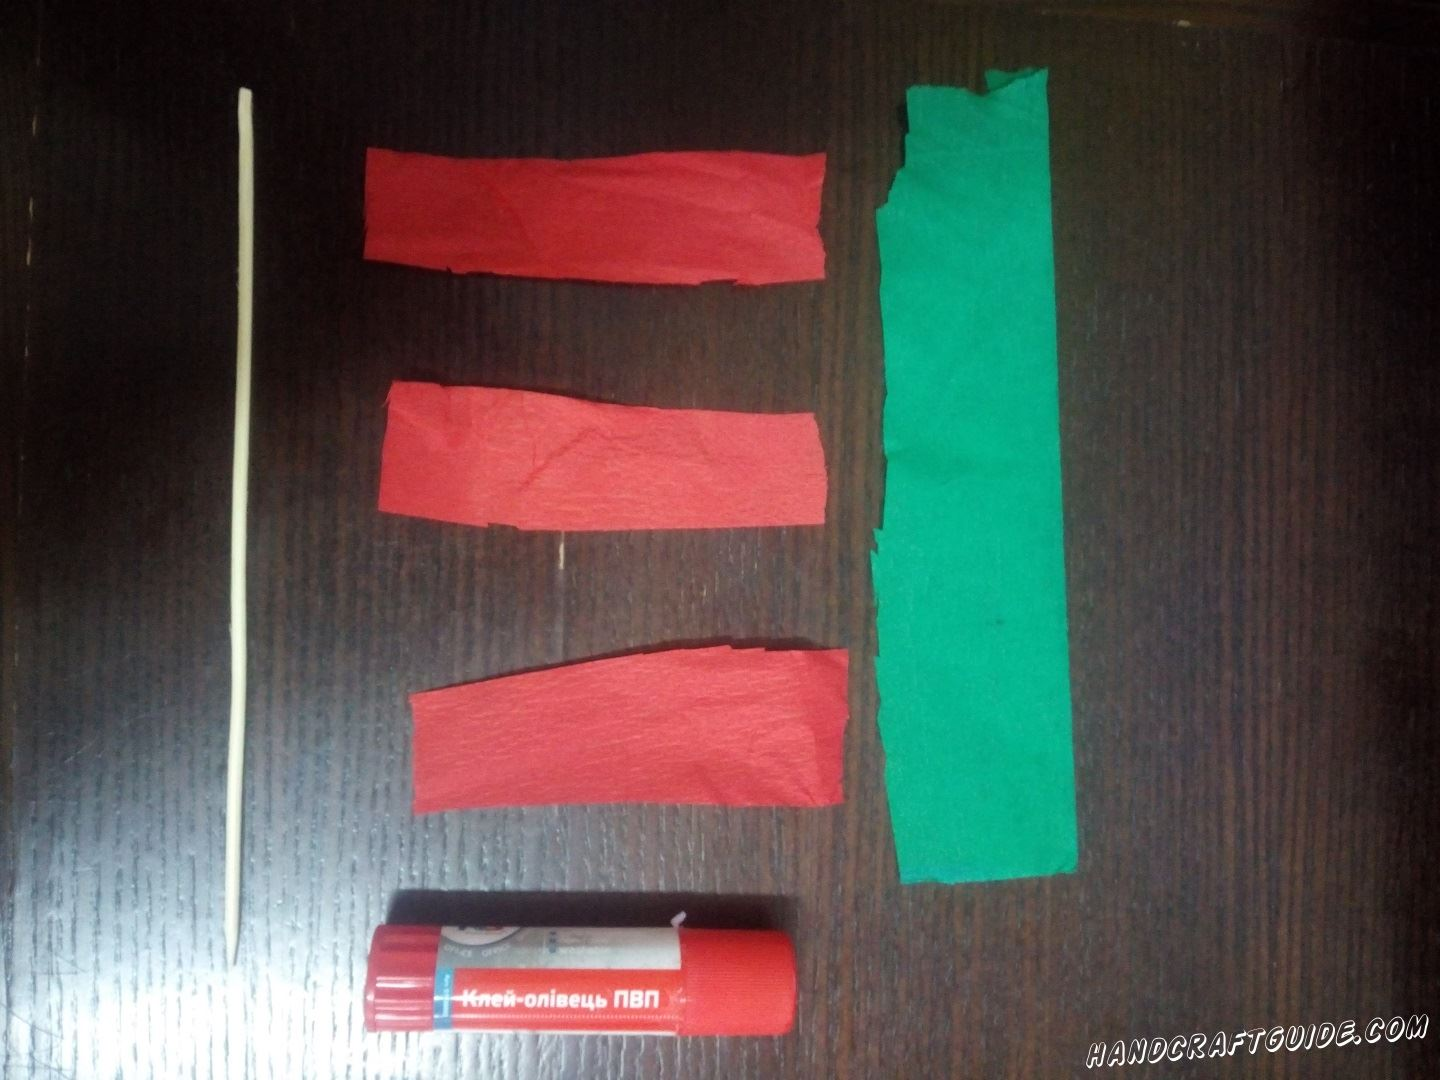 Cut the needed details out of colored paper as shown in the photo.